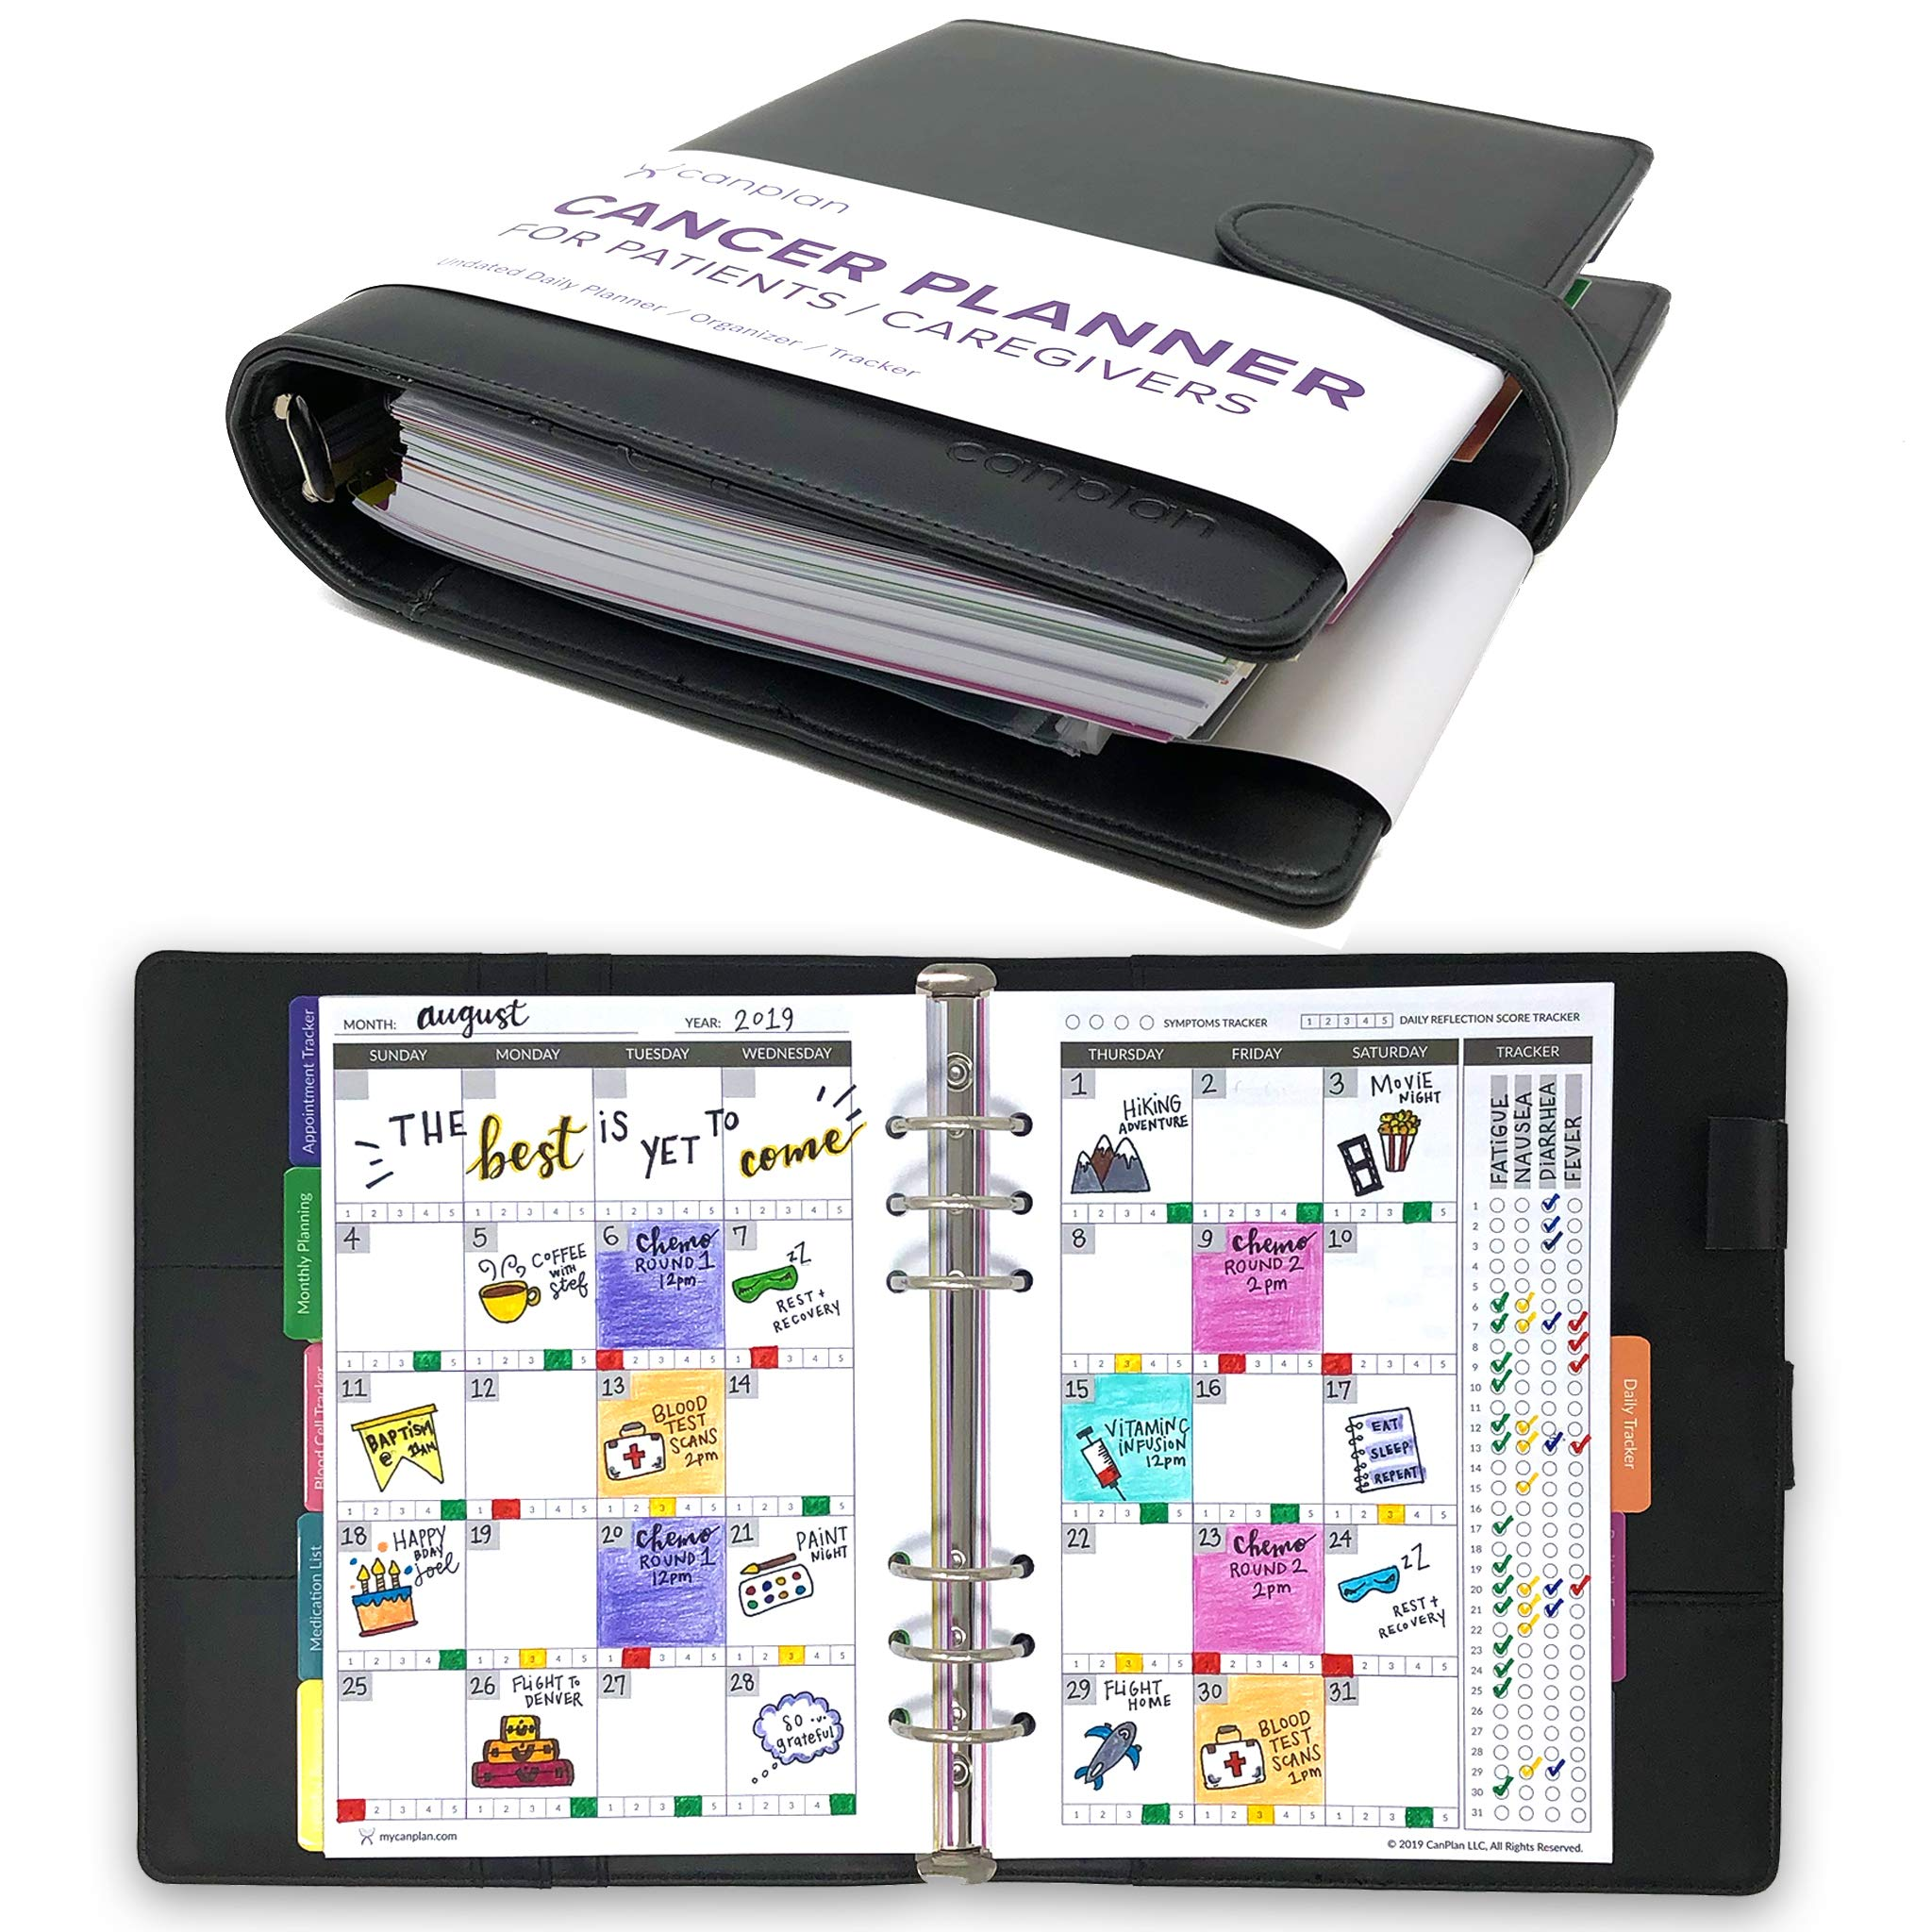 CanPlan Cancer Planner - The Only Planner Made to Help You Fight Cancer Day by Day, Undated Daily Organizer, Best Cancer Gift by CanPlan (Image #1)